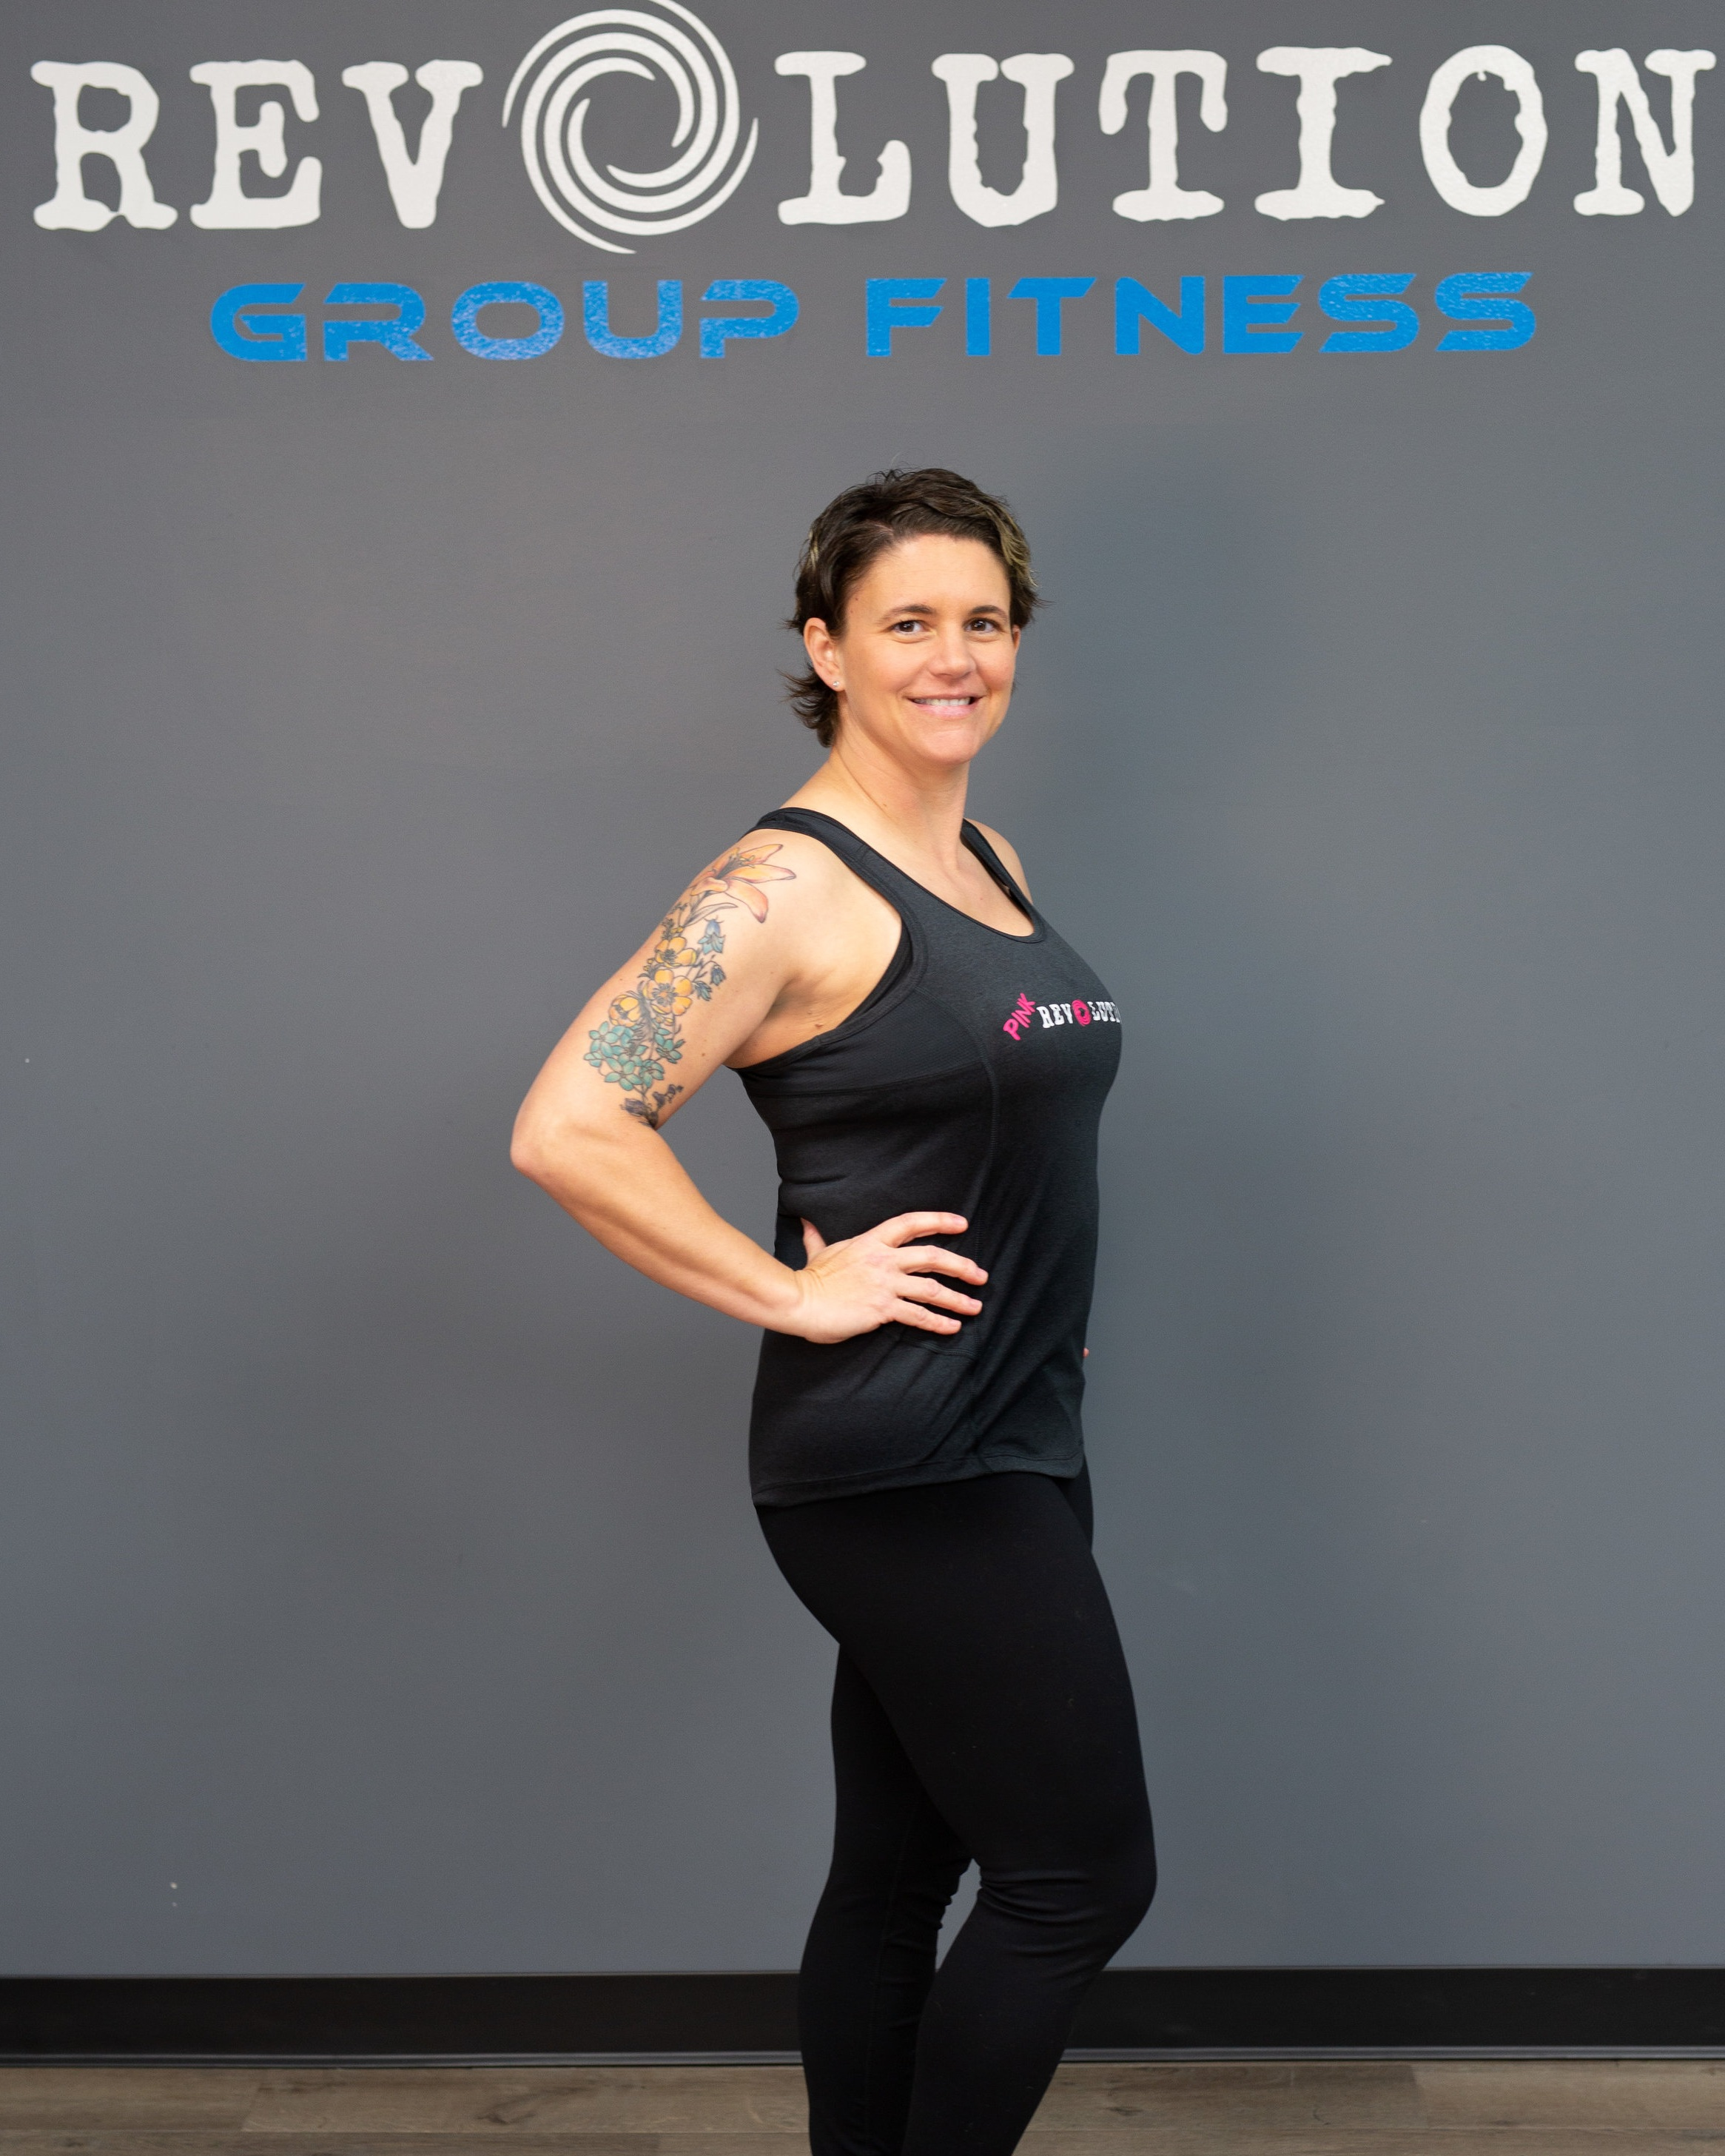 Hello I am Lori - How can I help you achieve your fitness goals?